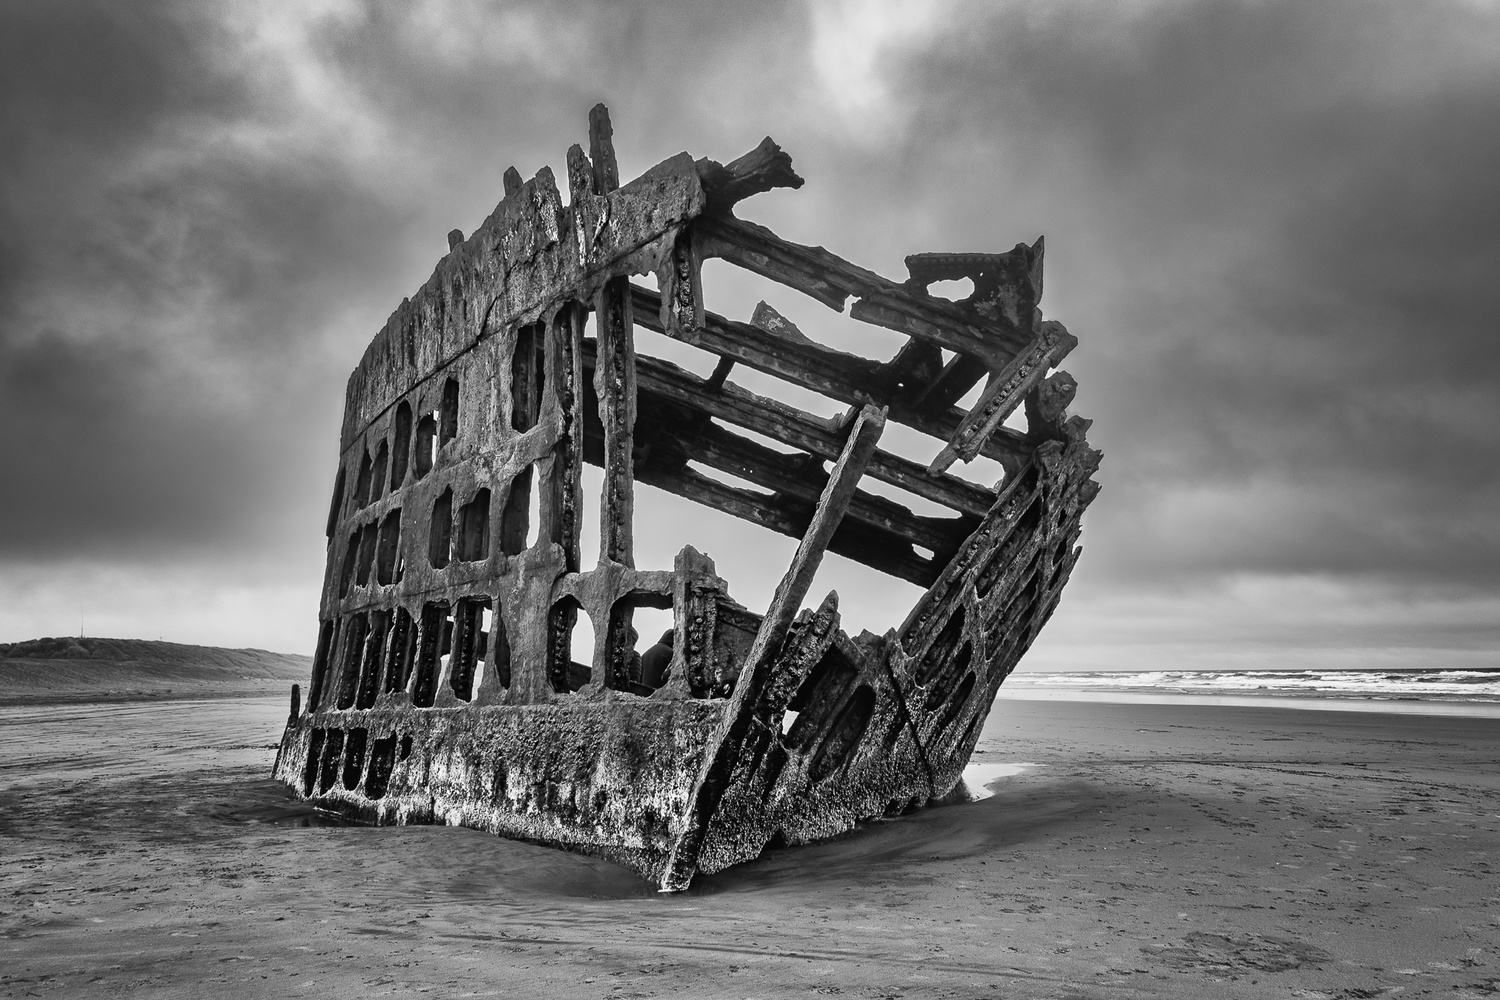 Wreck of Peter Iredale by Mariano de Miguel